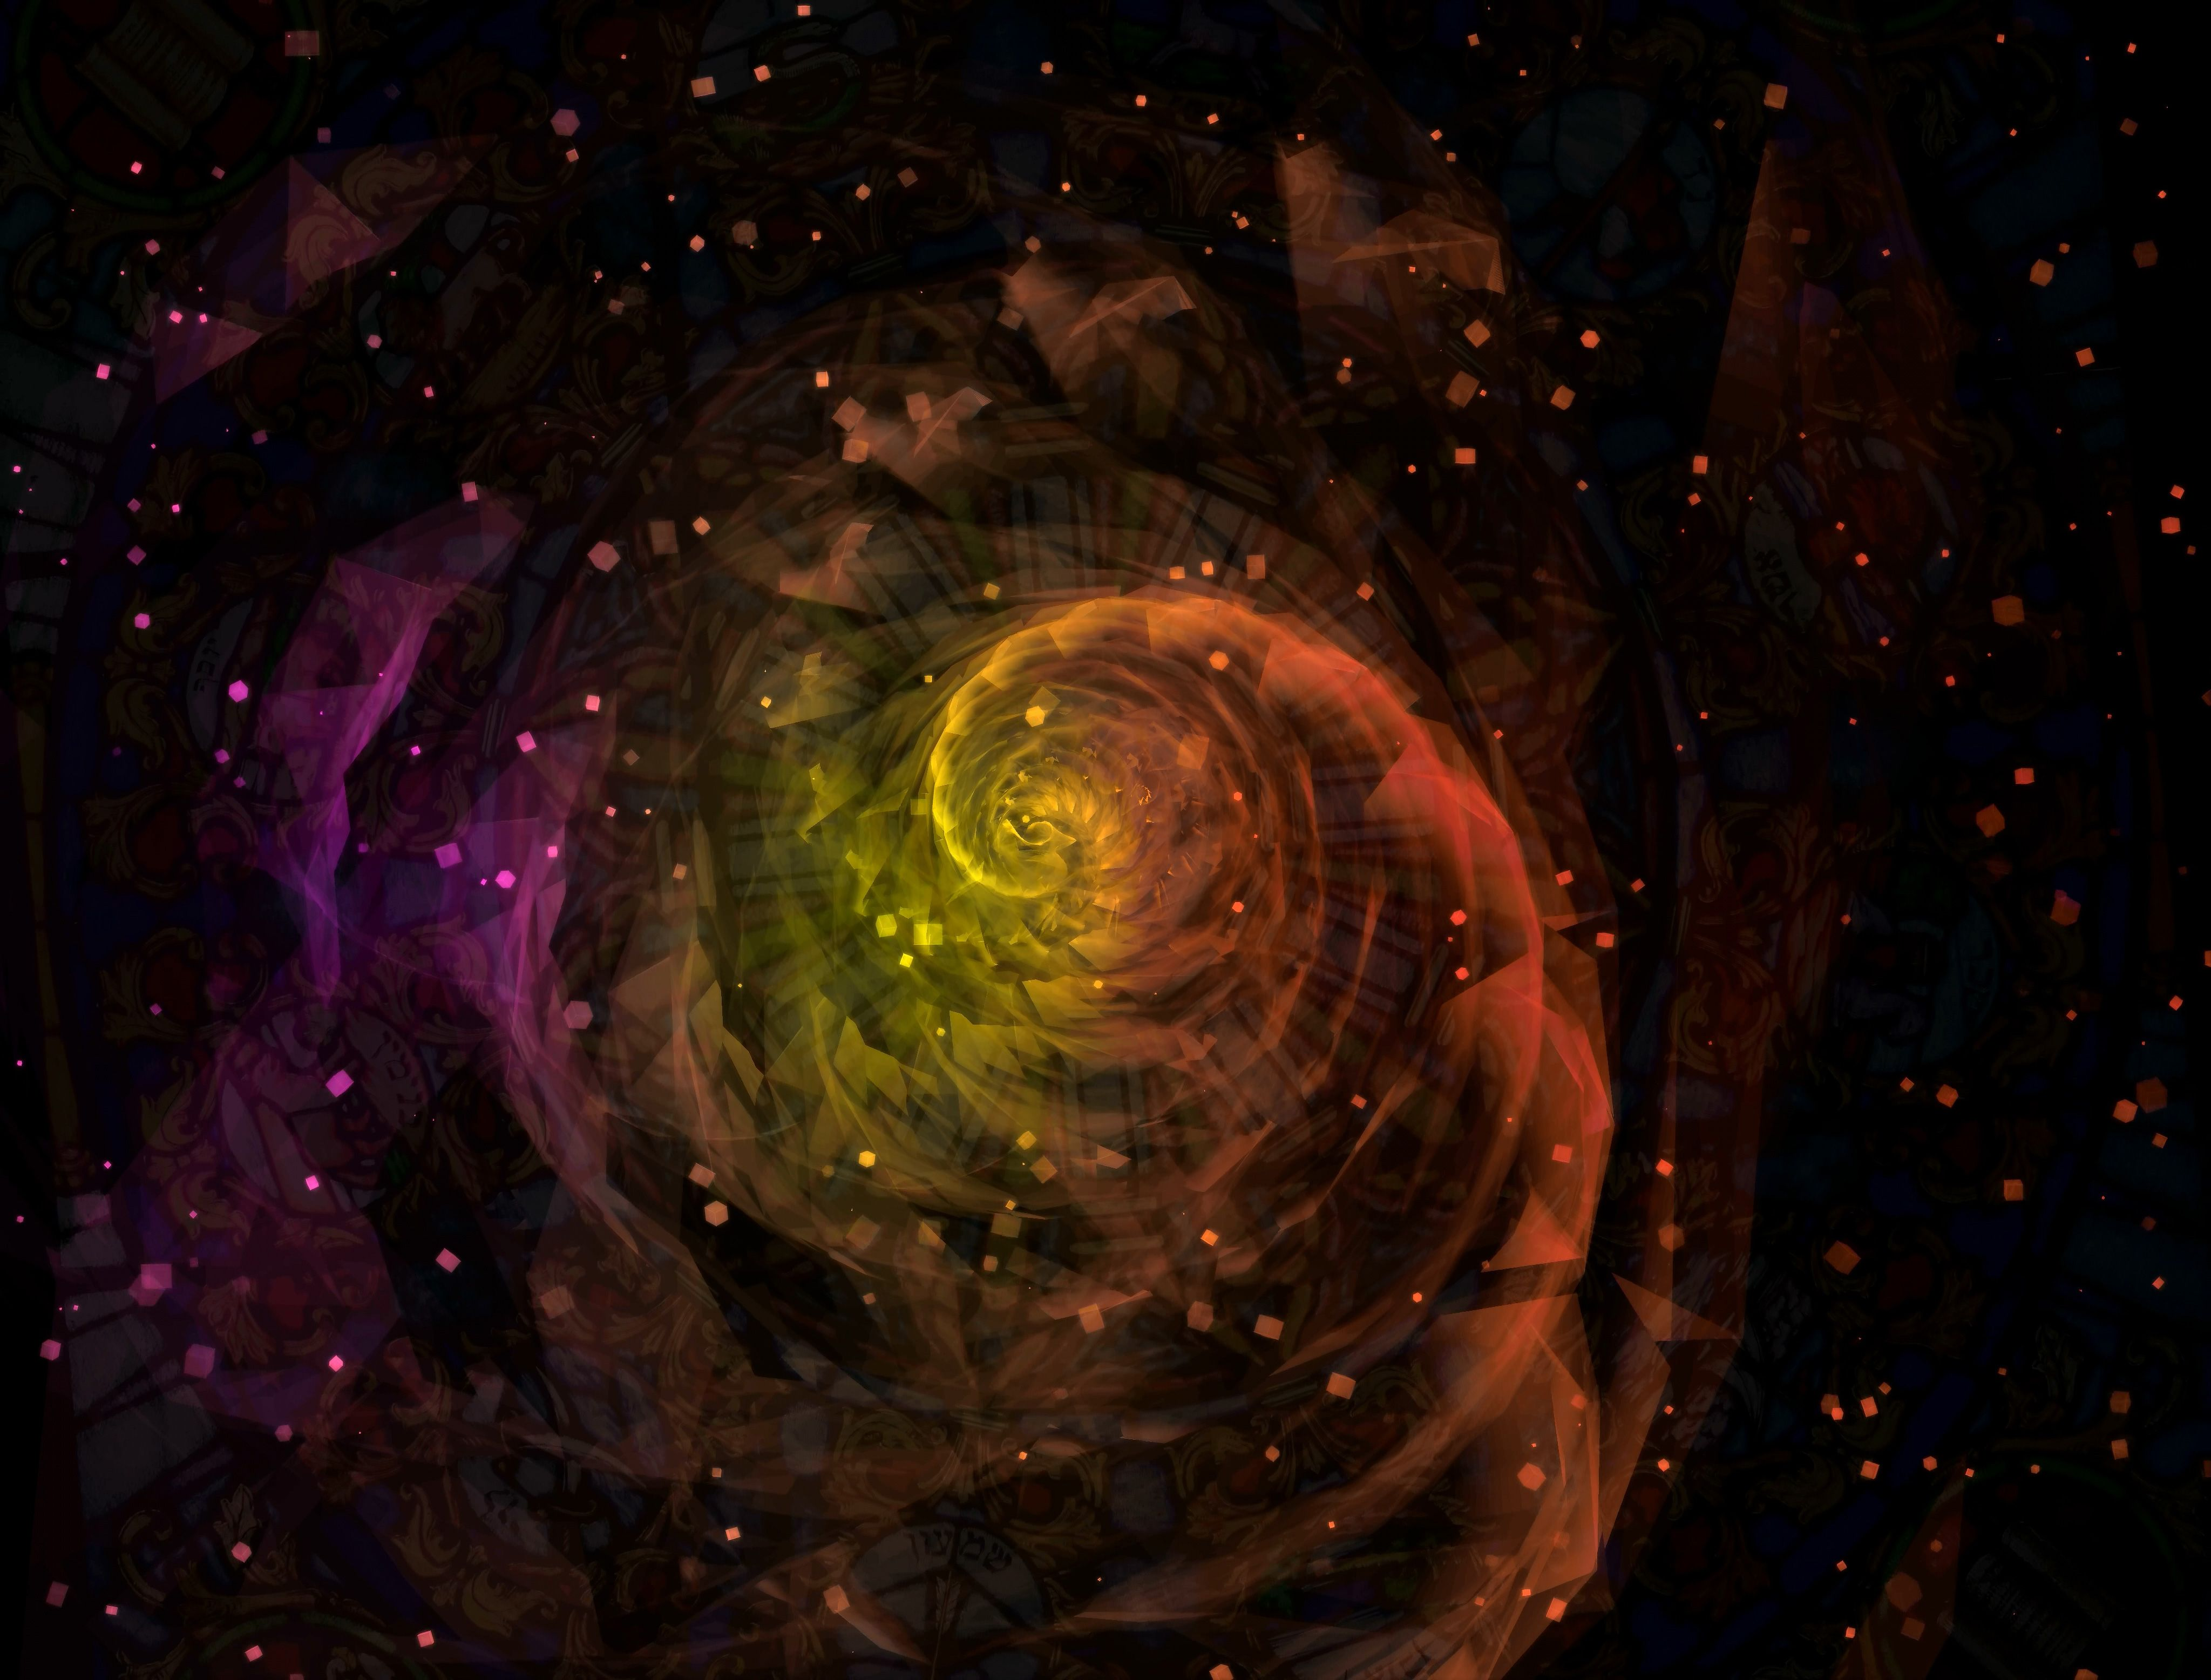 This Is A Scene Of The Gases Formation Of A Swirl In The Galaxy Our Universe Is Full Of Such Galaxies And Much Mor Abstract Backgrounds 4k Background Abstract